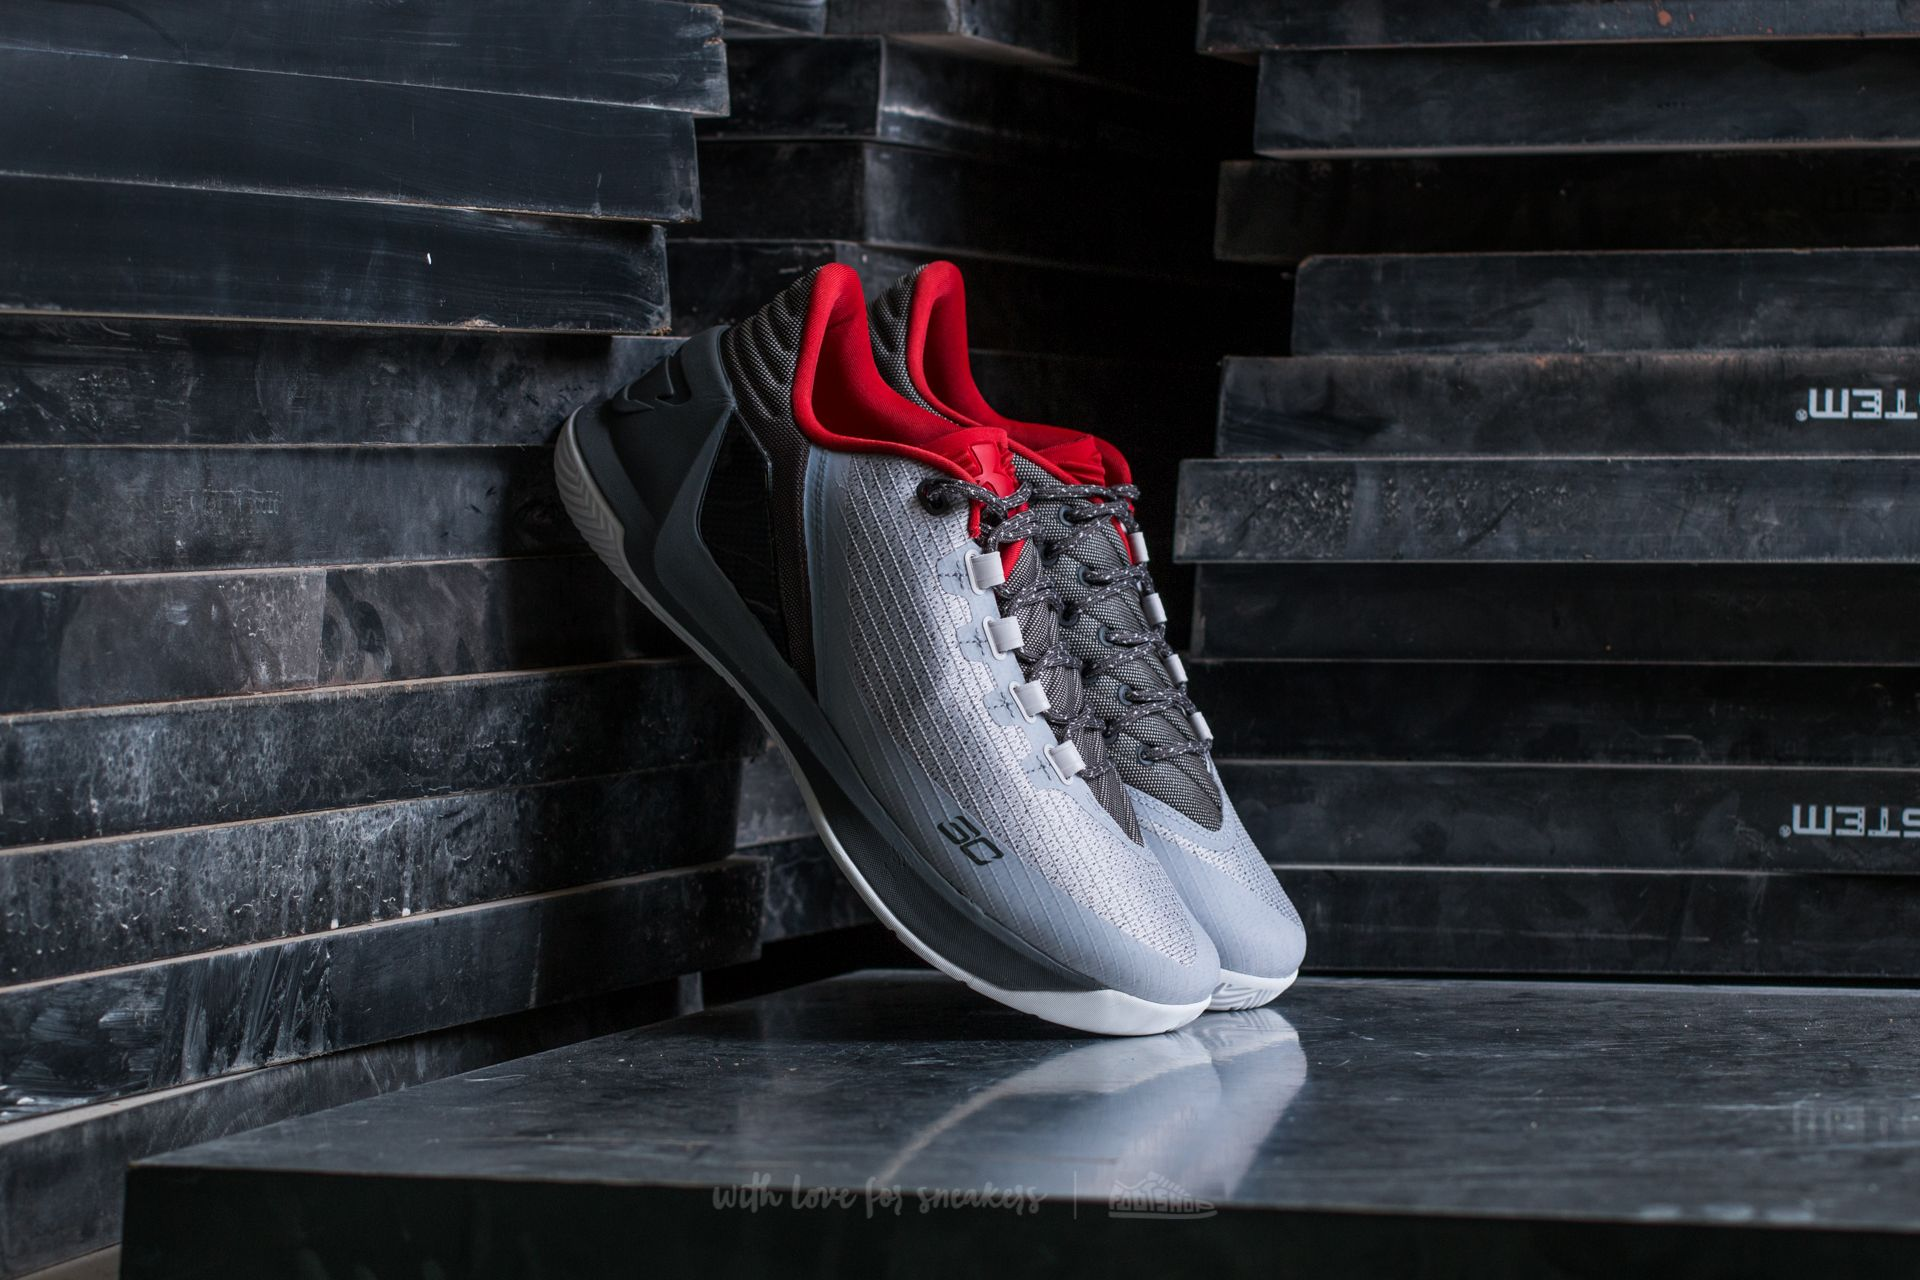 reputable site 499df 14e78 Under Armour Curry 3 Low Rhino Grey / Pomegranate | Footshop